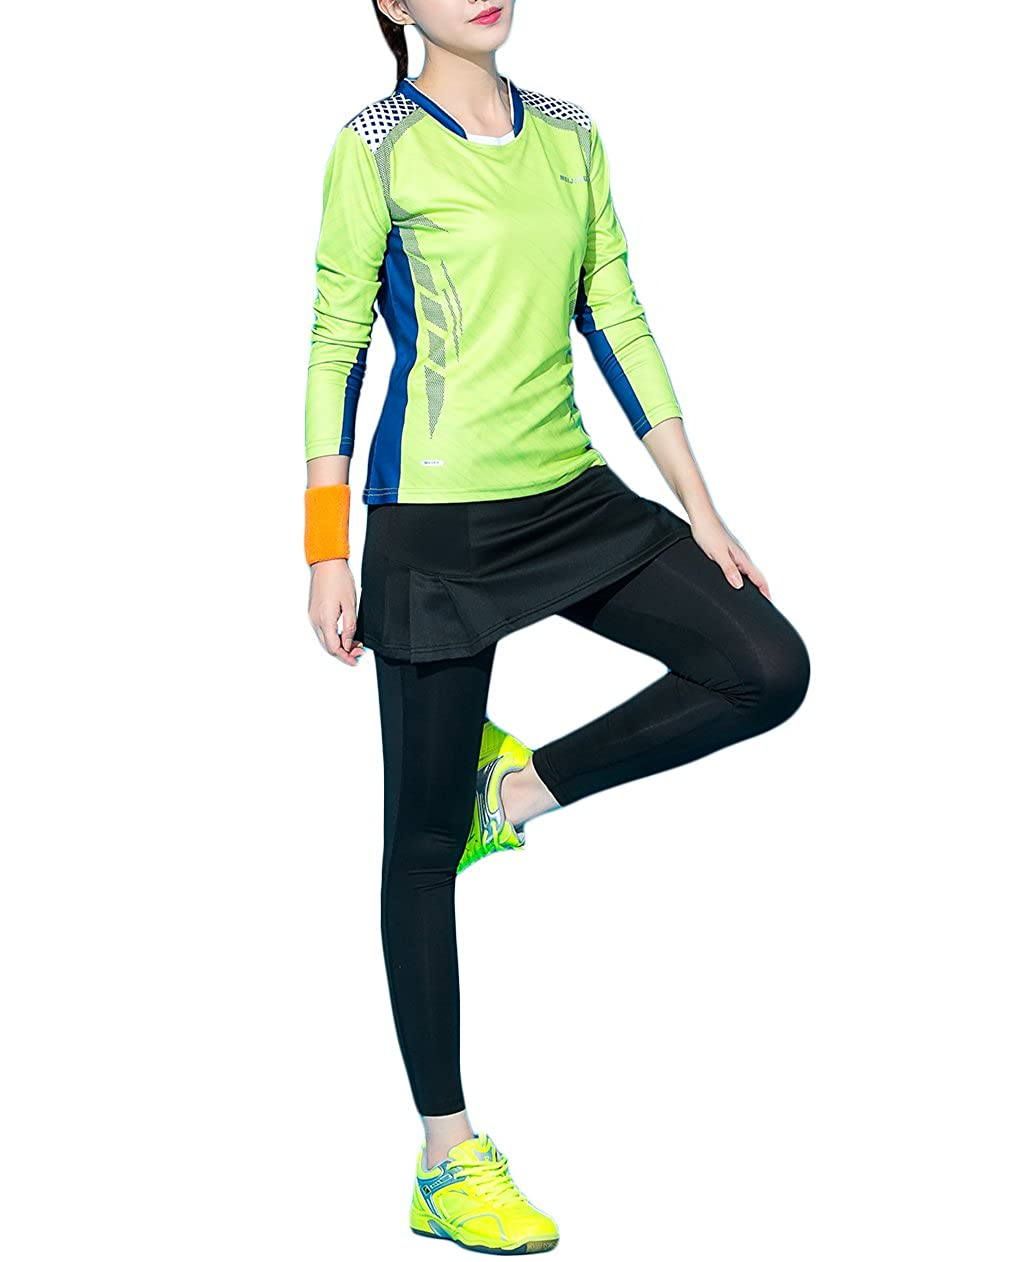 7bfa92115da9f Amazon.com: UDIY Skirted Leggings - Women's Running Skirts Casual Gym  Tennis Skort with Leggings: Clothing